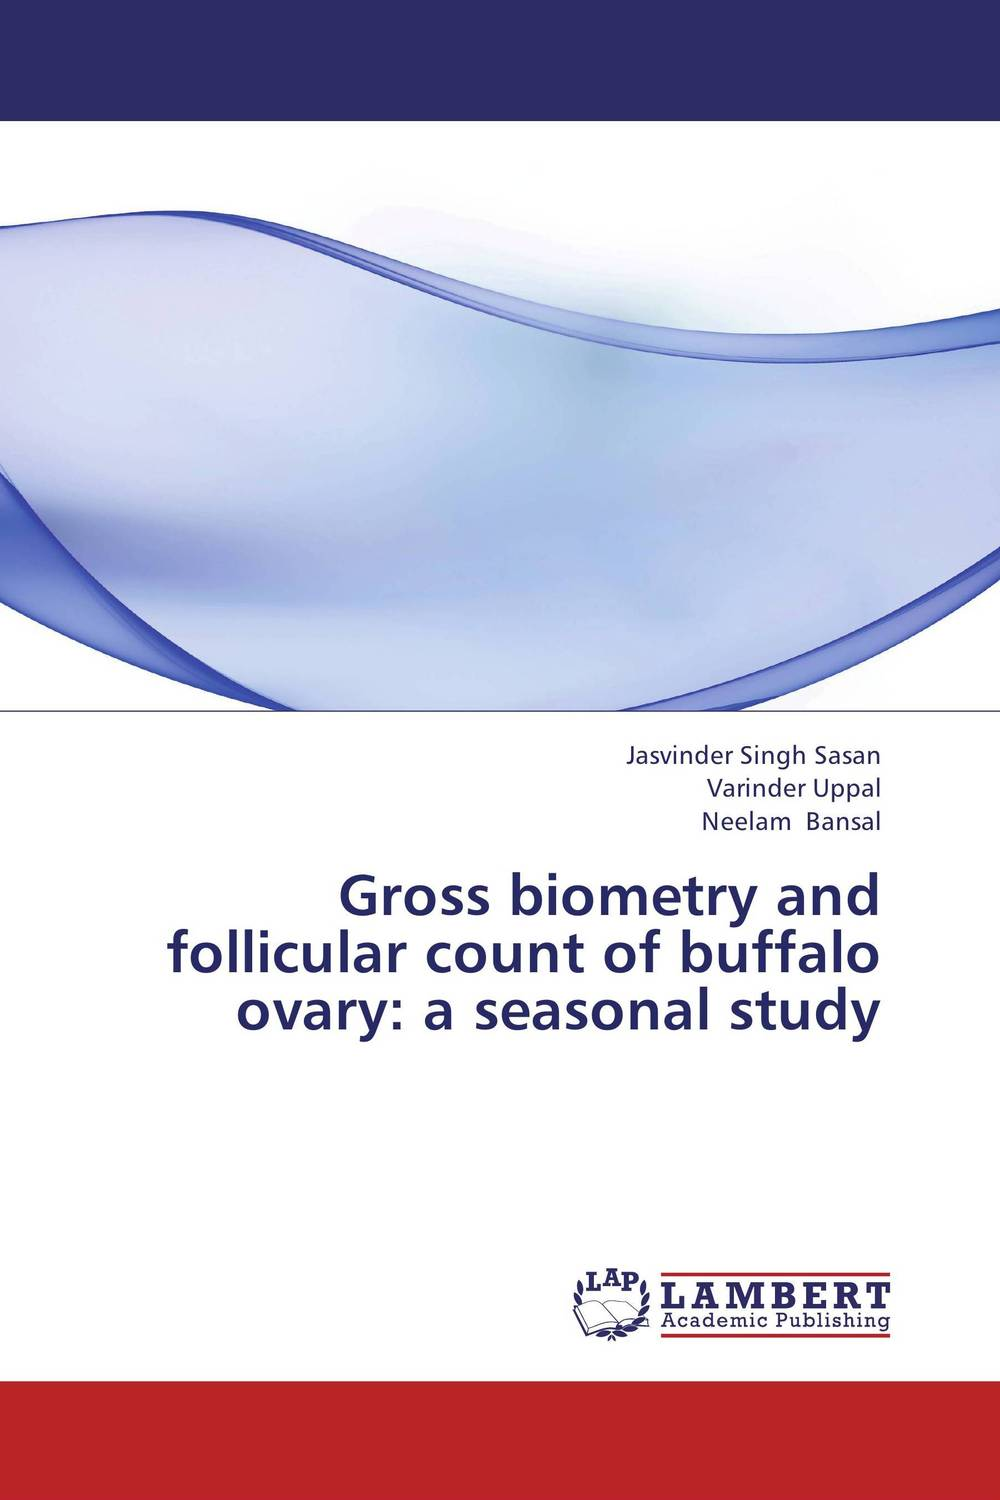 Gross biometry and follicular count of buffalo ovary: a seasonal study therapeutic efficiency of norgestomet and pmsg in anestrous buffaloes